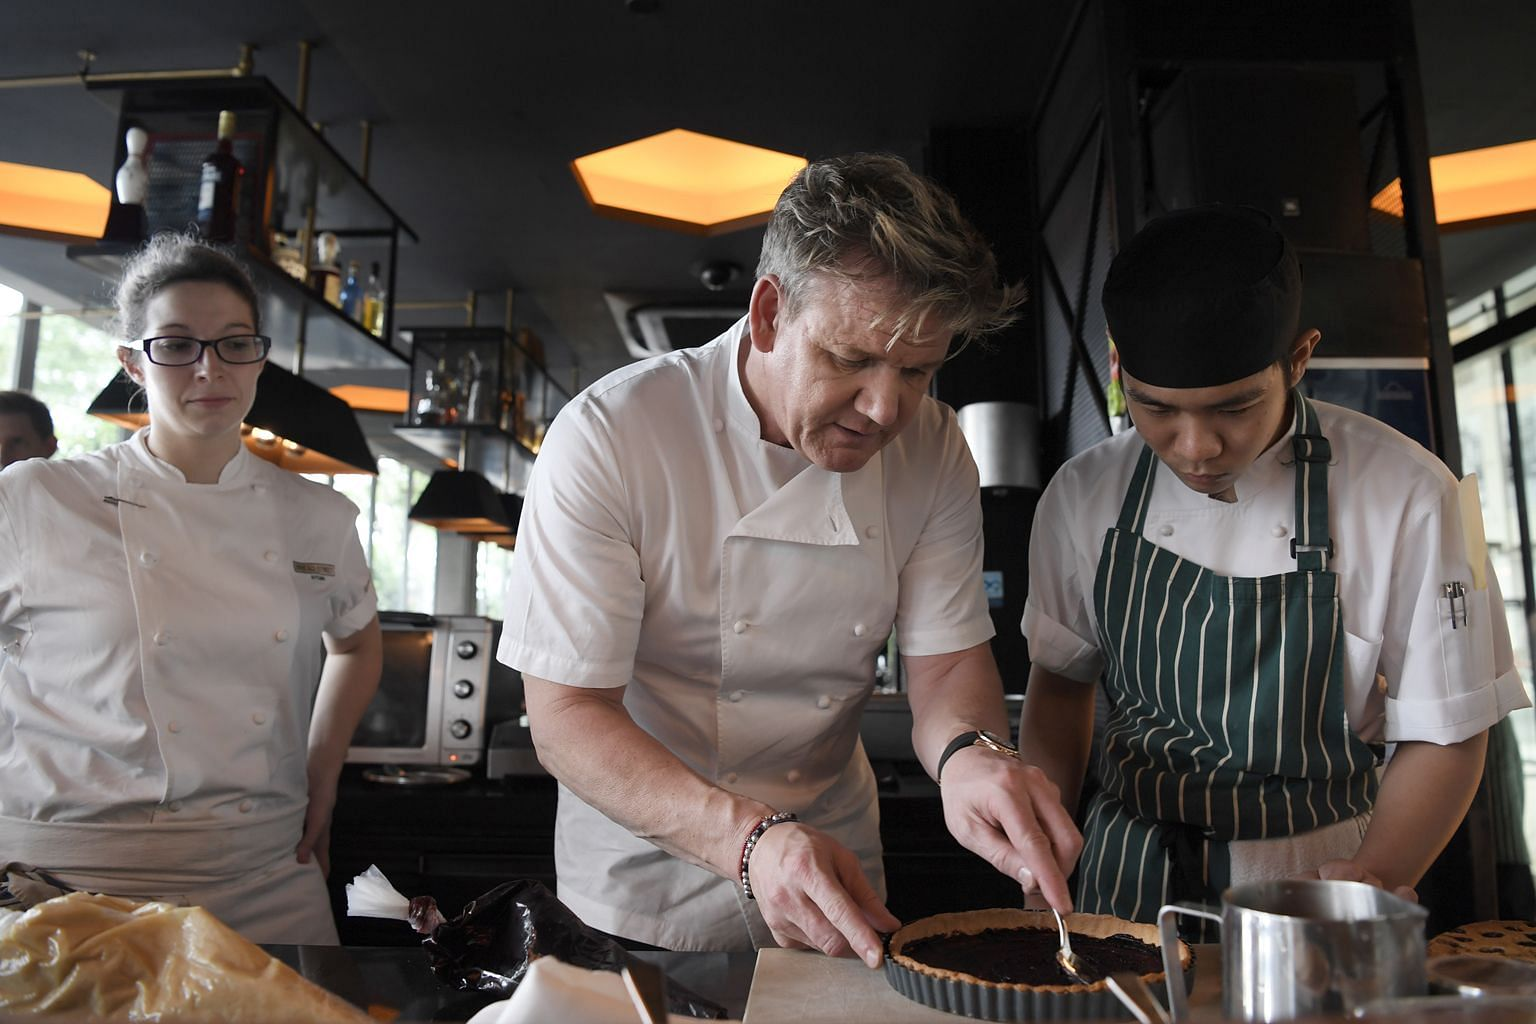 British restaurateur Gordon Ramsay shows Bread Street Kitchen intern Ong Sao Wee how to spread blueberry paste for the blueberry- almond tart creme fraiche. Standing behind them is the restaurant's executive chef Sabrina Stillhart.